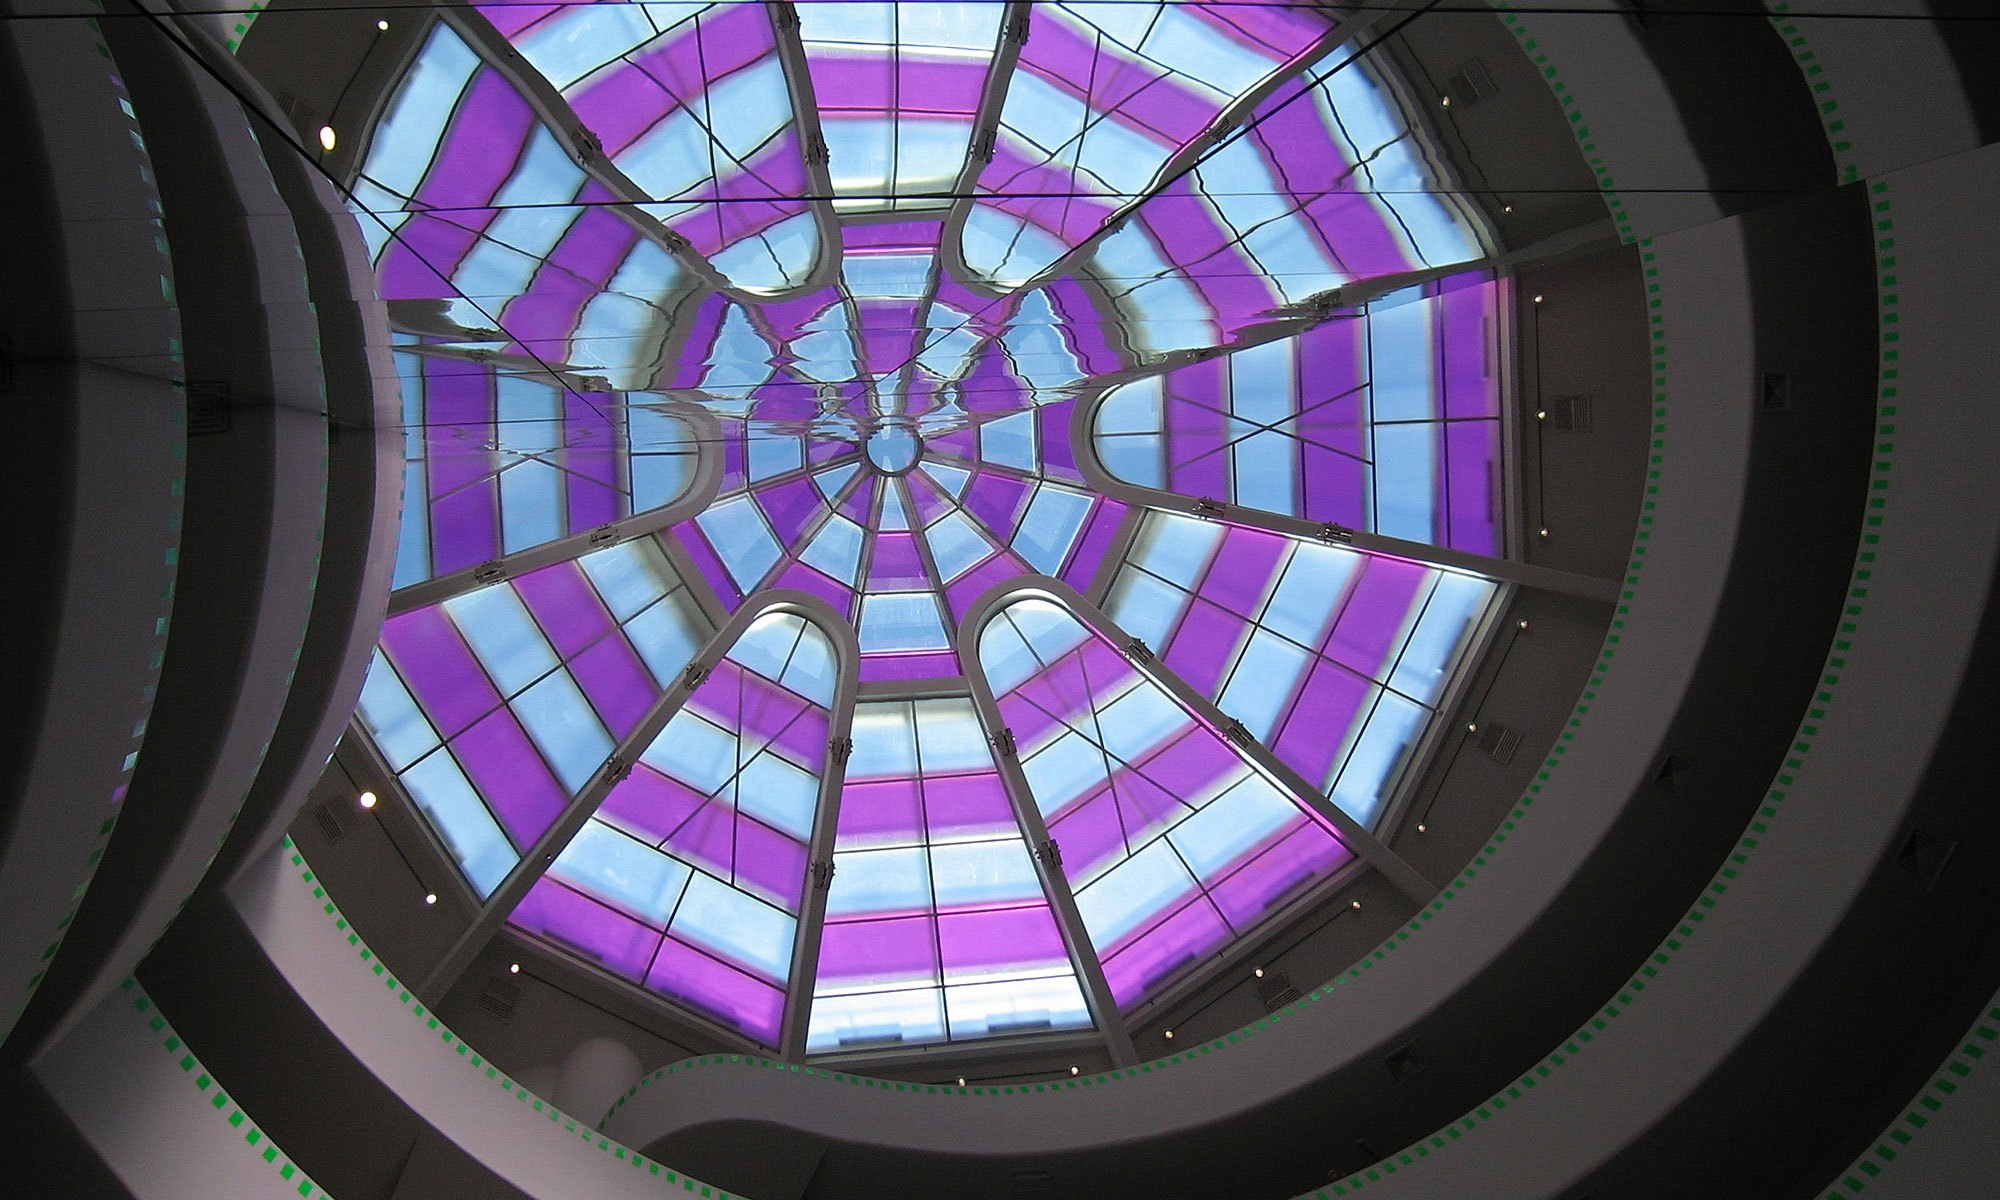 New York Guggenheim Glass Ceiling